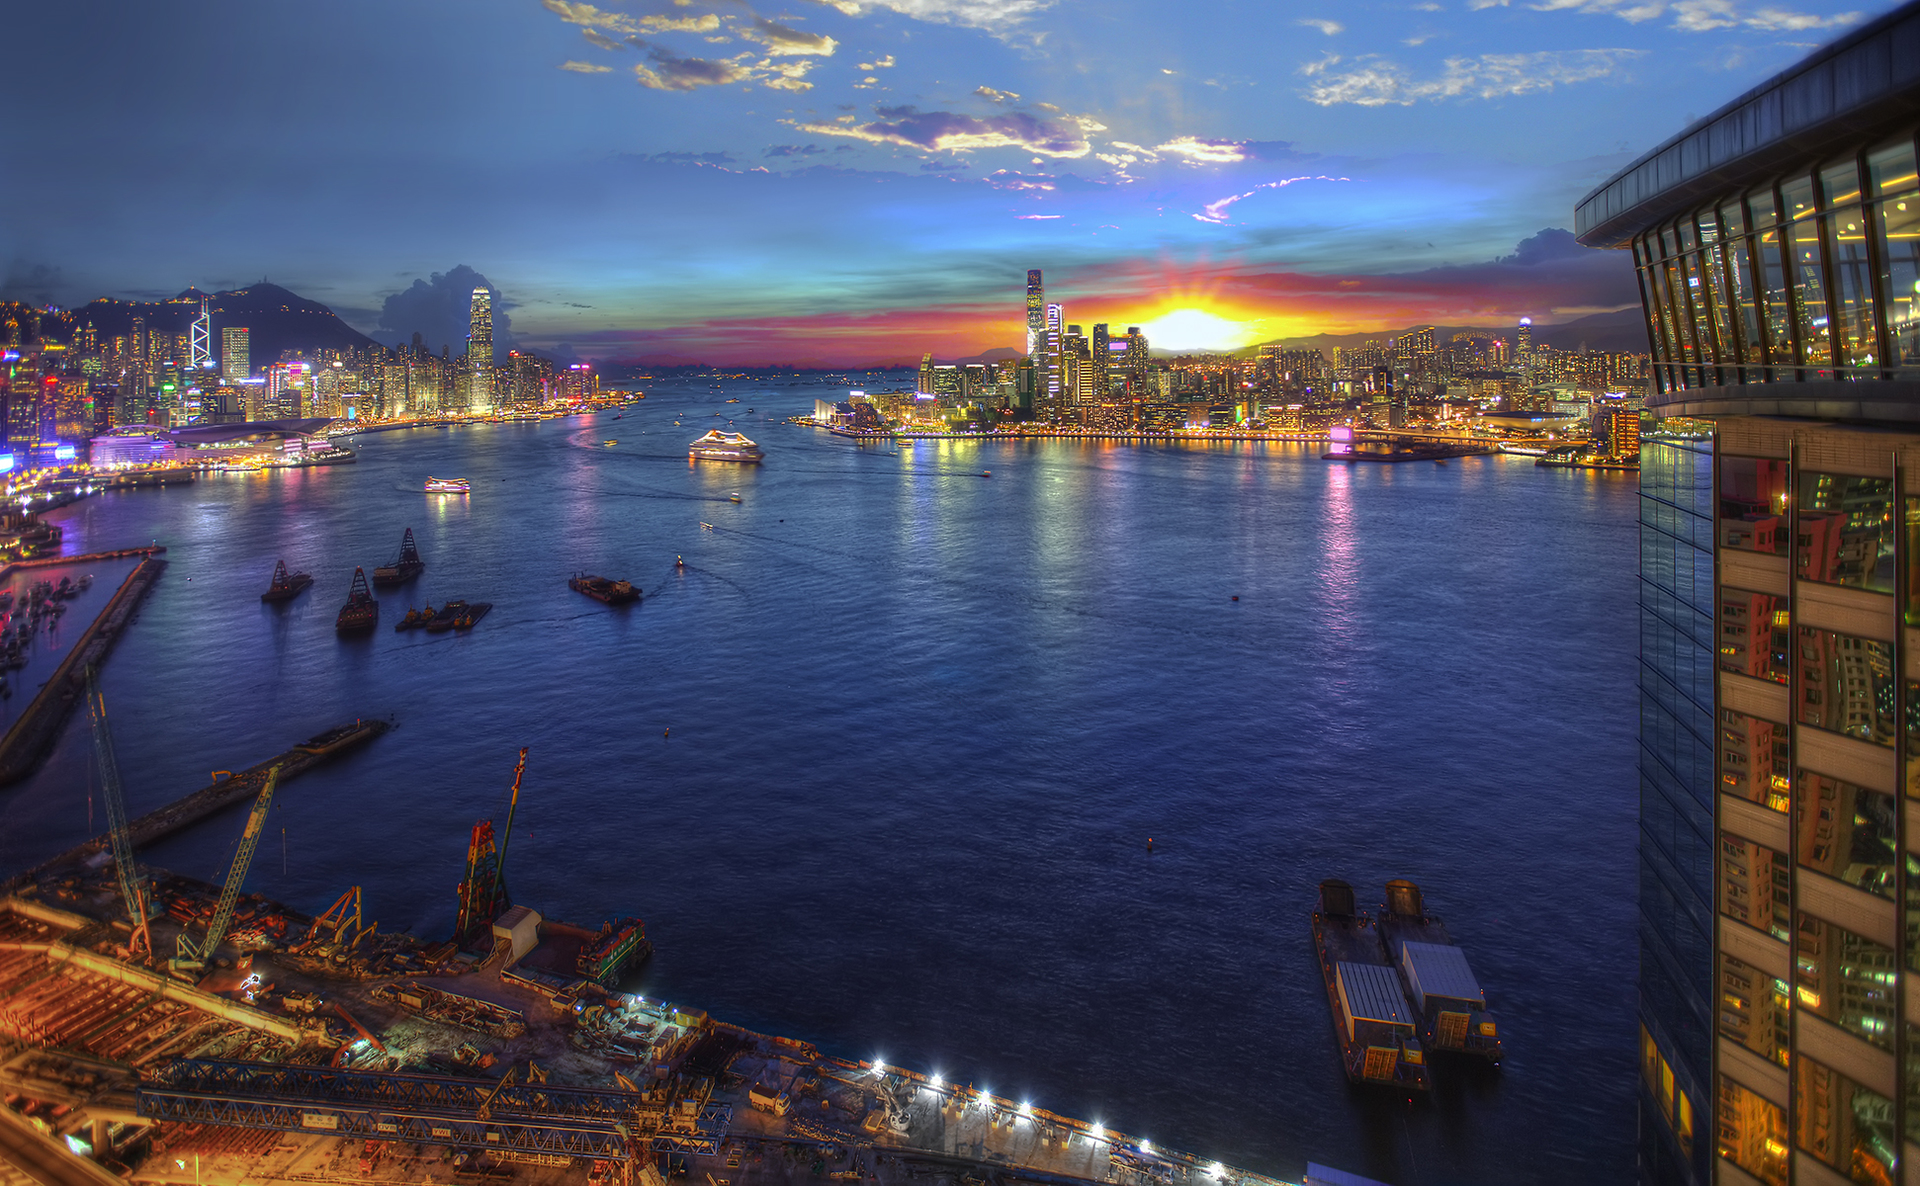 """Kowloon sunset. The sunsets over Hong Kong's """"Kowloon Side"""""""